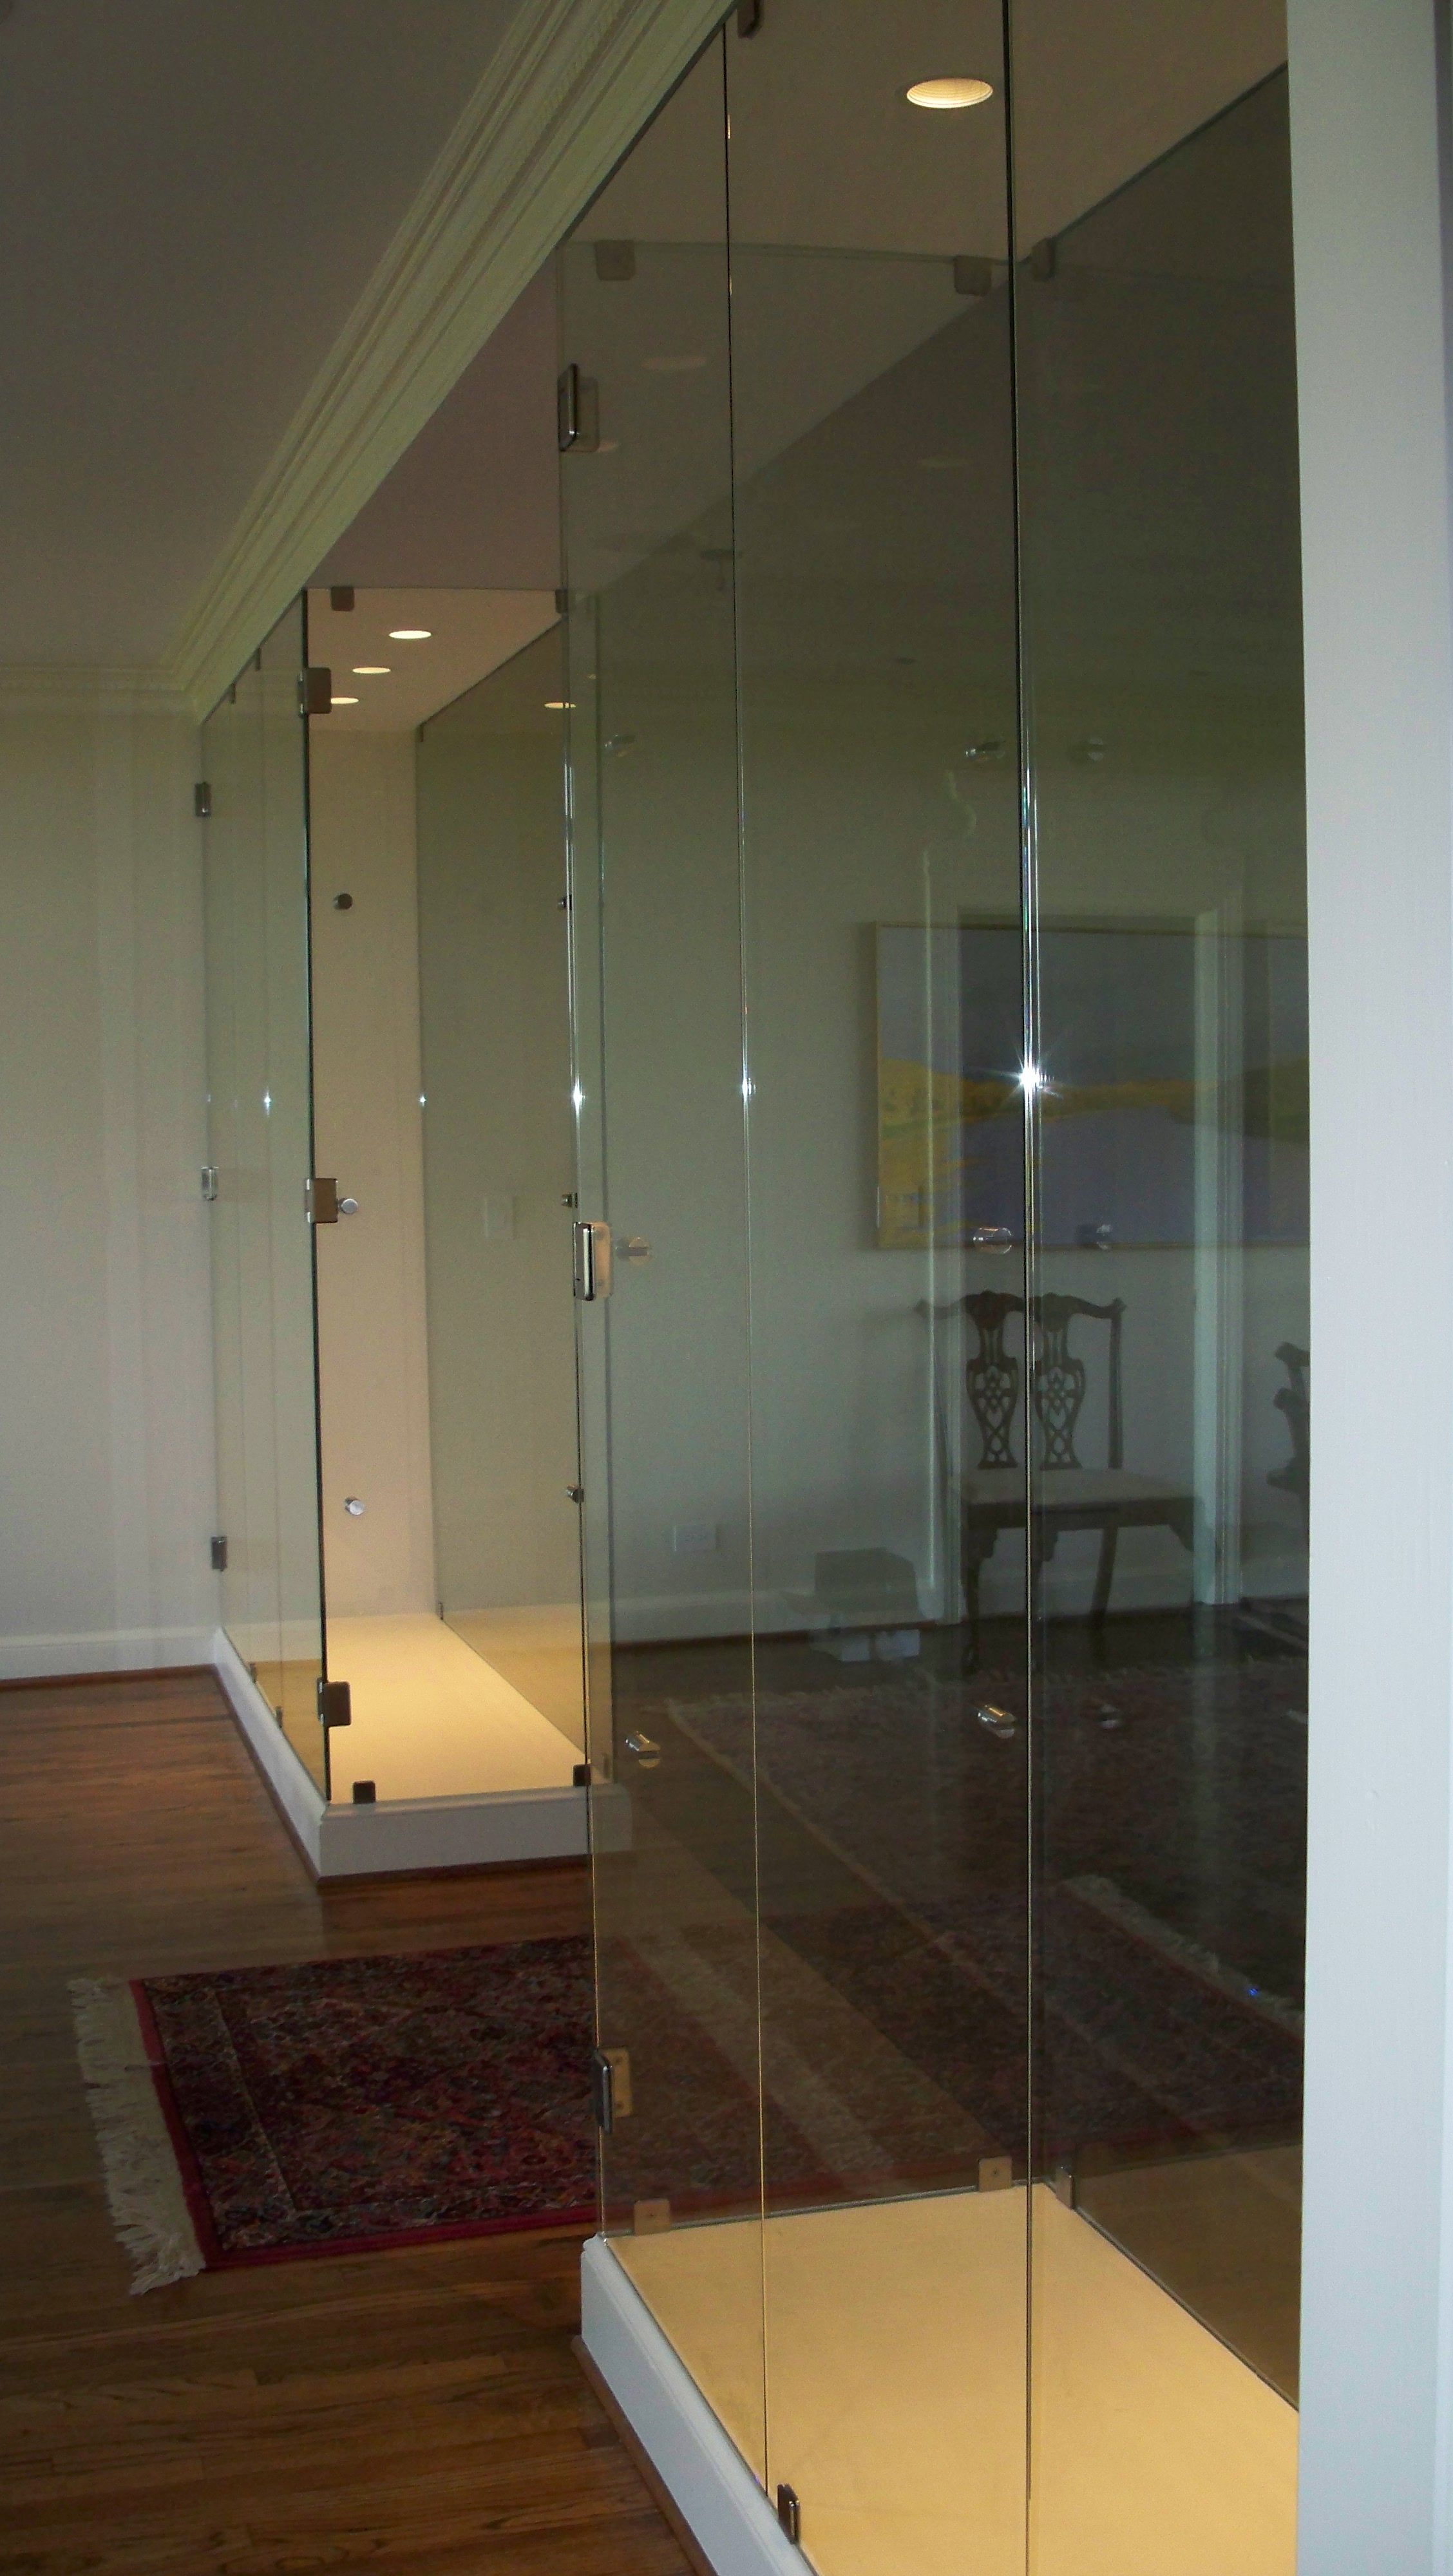 Glass displays 4-30-08 004